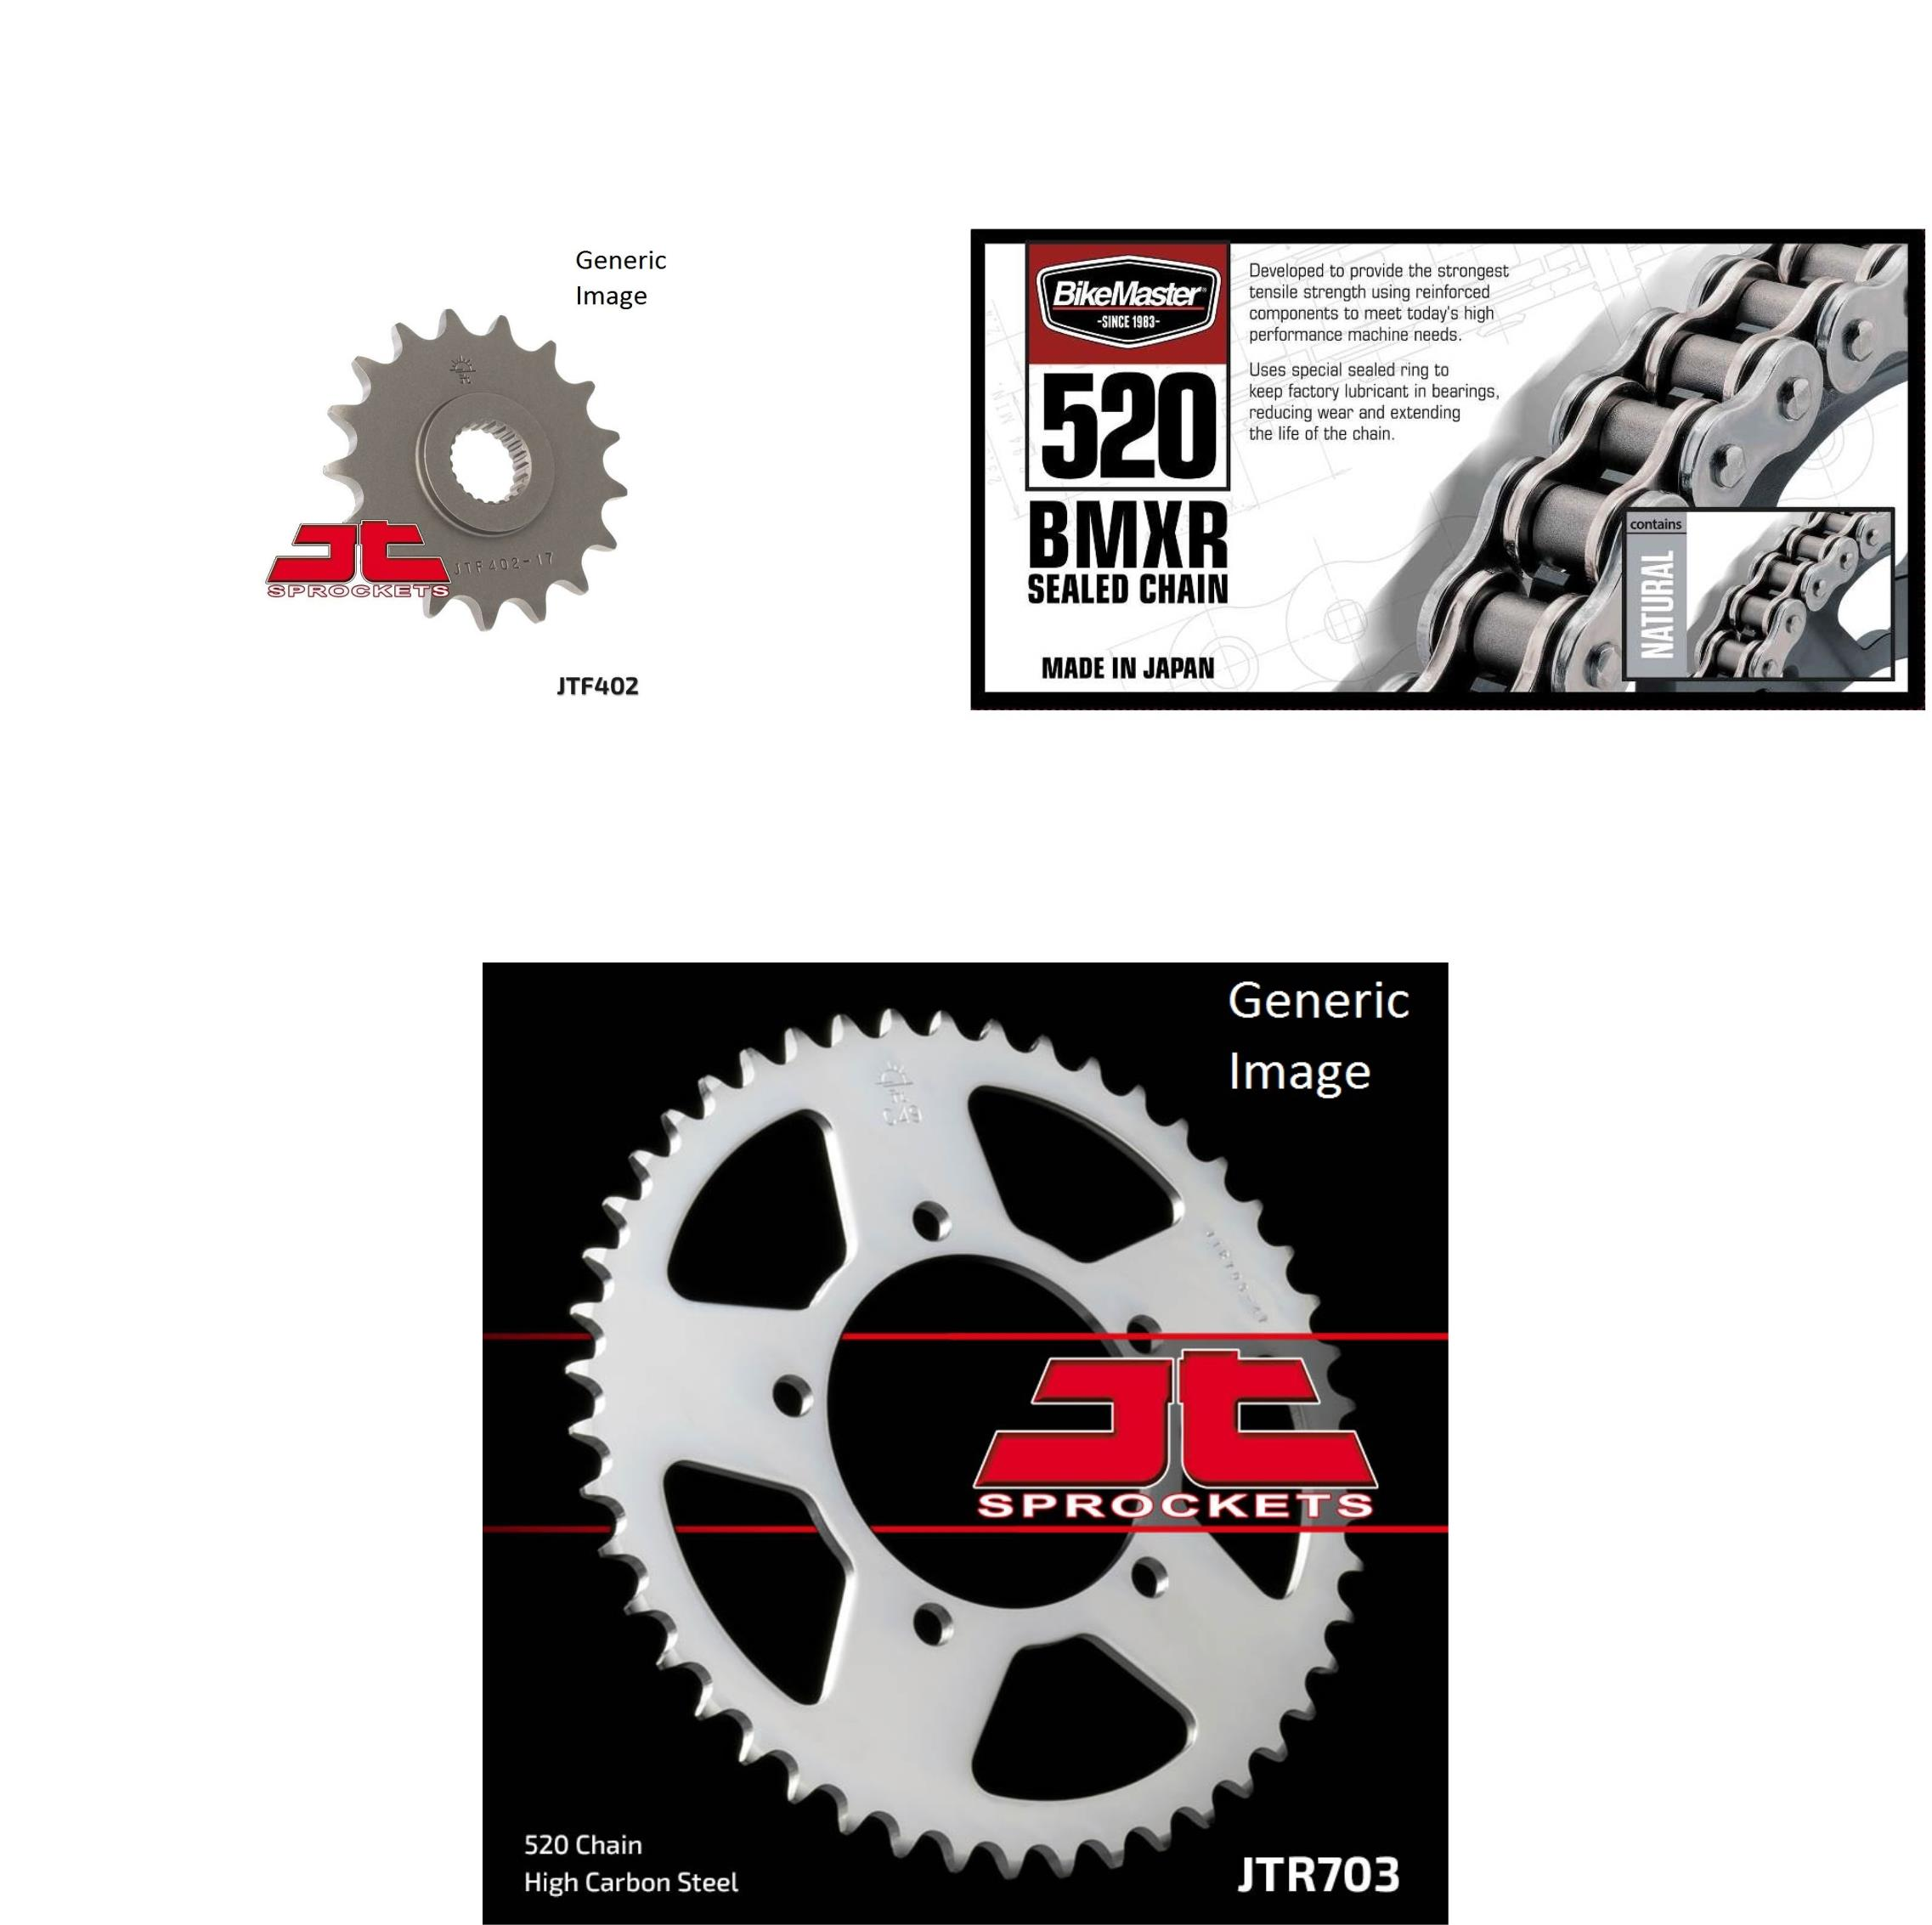 BIKEMASTER 520 BMXR Sealed Chain Natural, JT Front & Rear Sprocket Kit for Street BMW 650 Xmoto 2007-2008